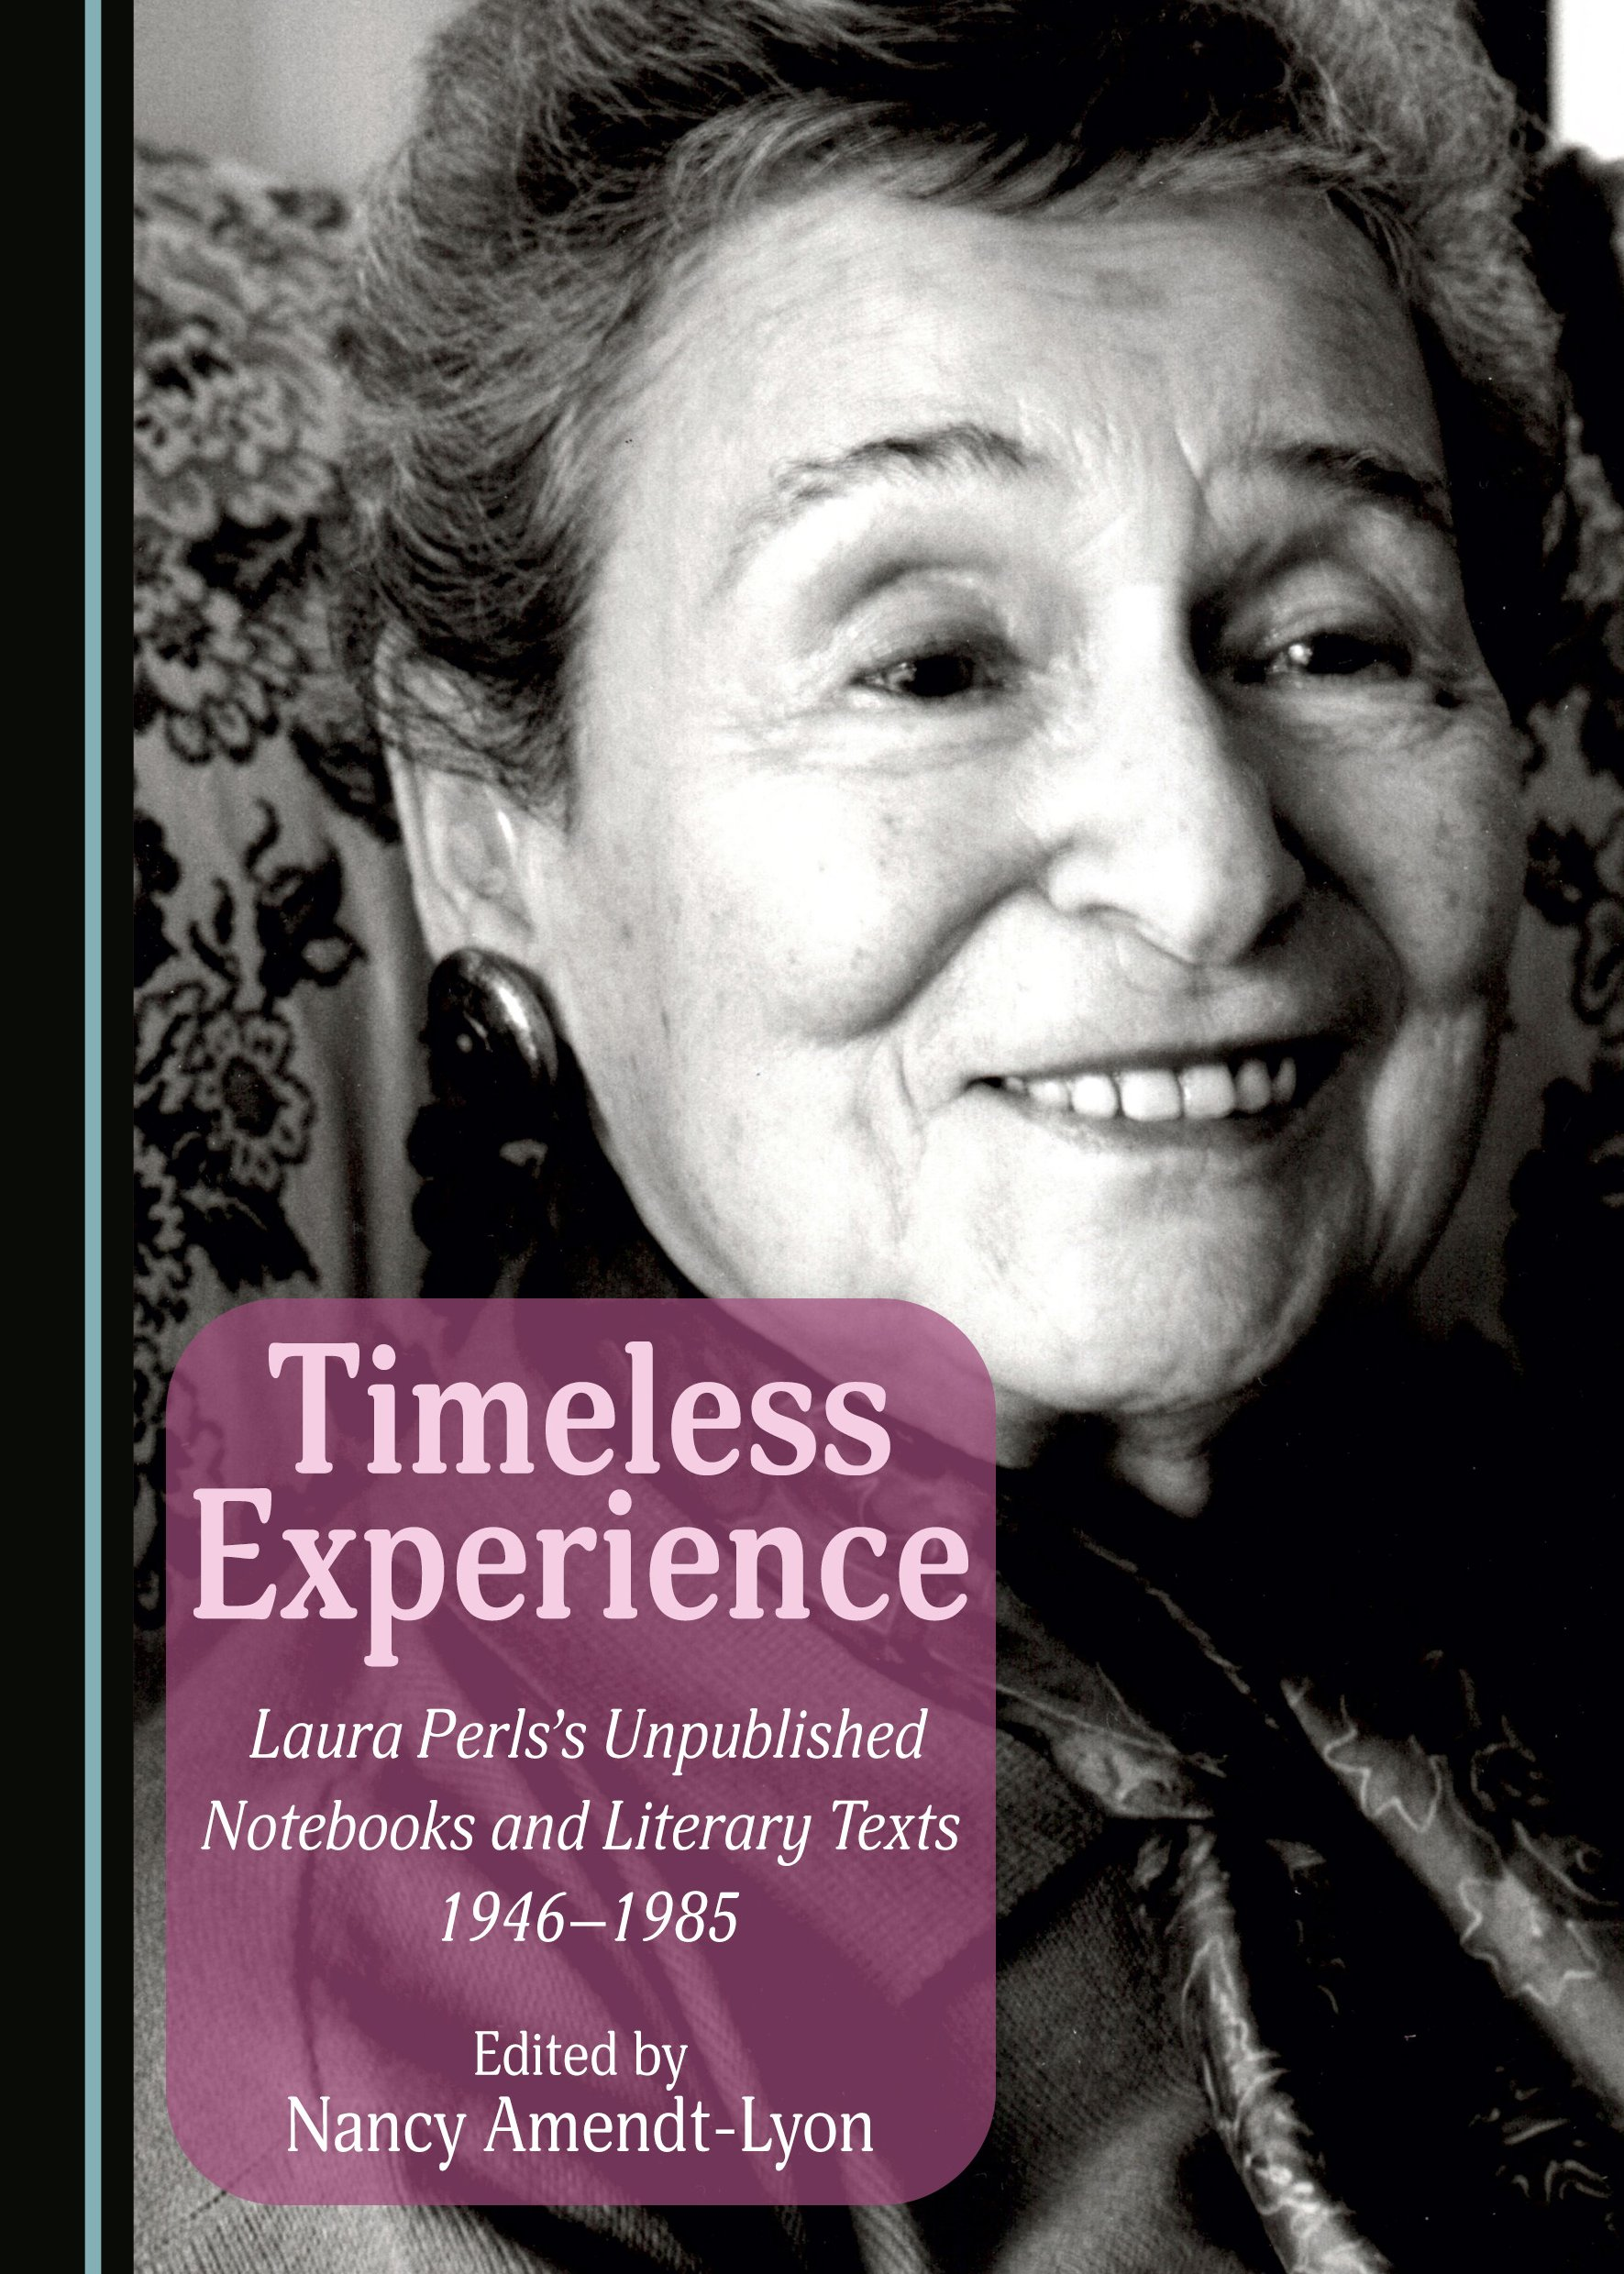 Timeless Experience: Laura Perls's Unpublished Notebooks and Literary Texts 1946-1985